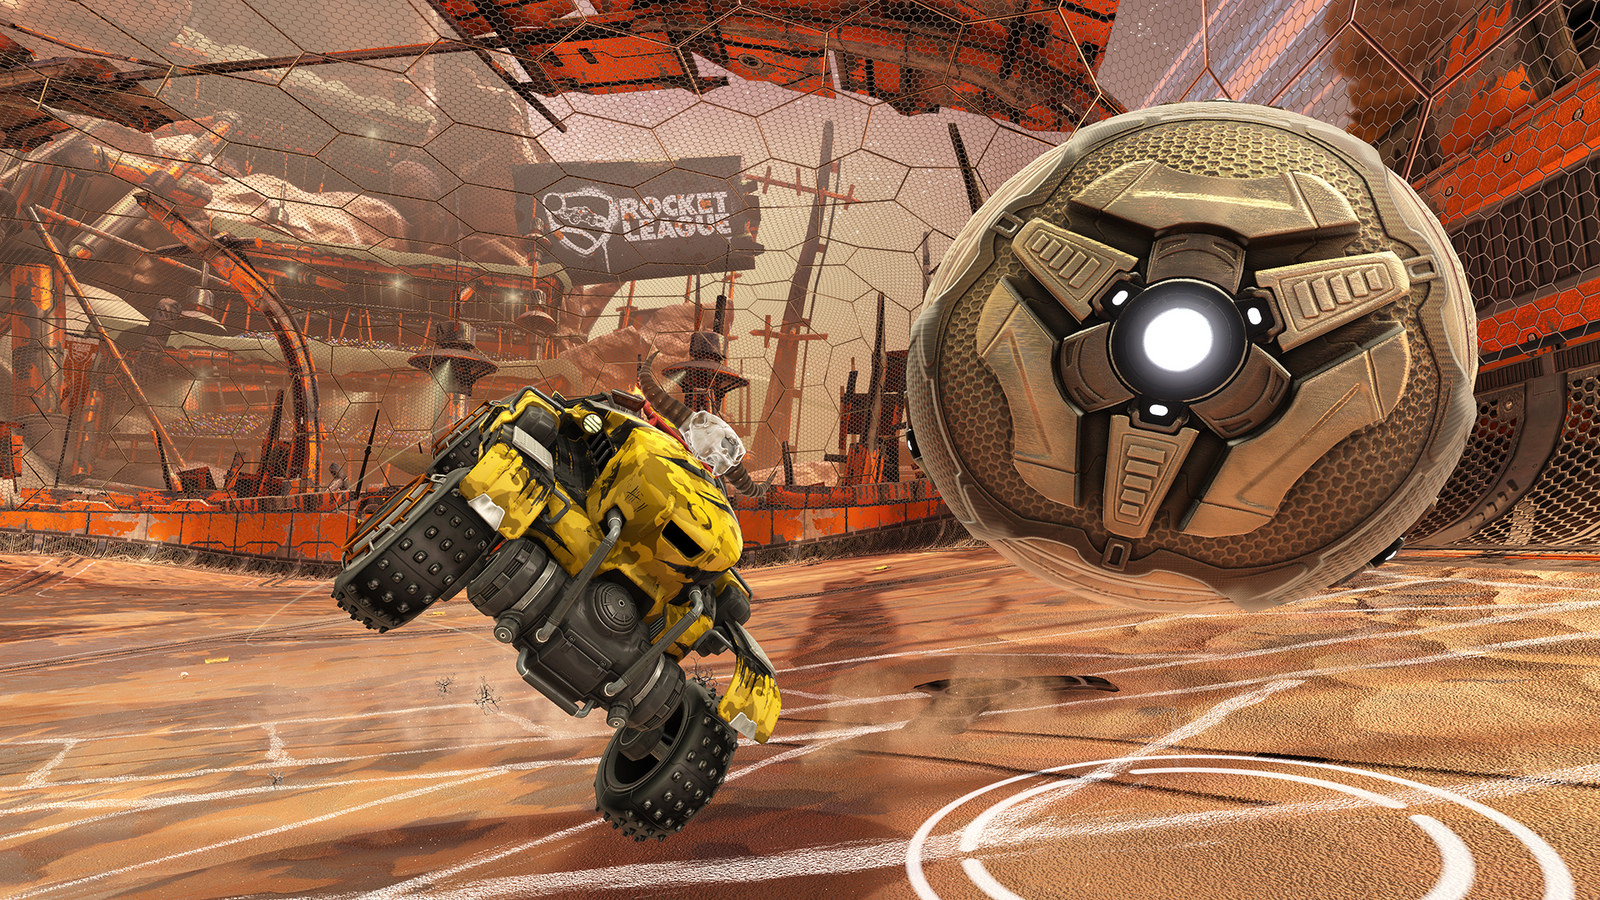 Rocket League devs already know how to add cross-network multiplayer - VG247